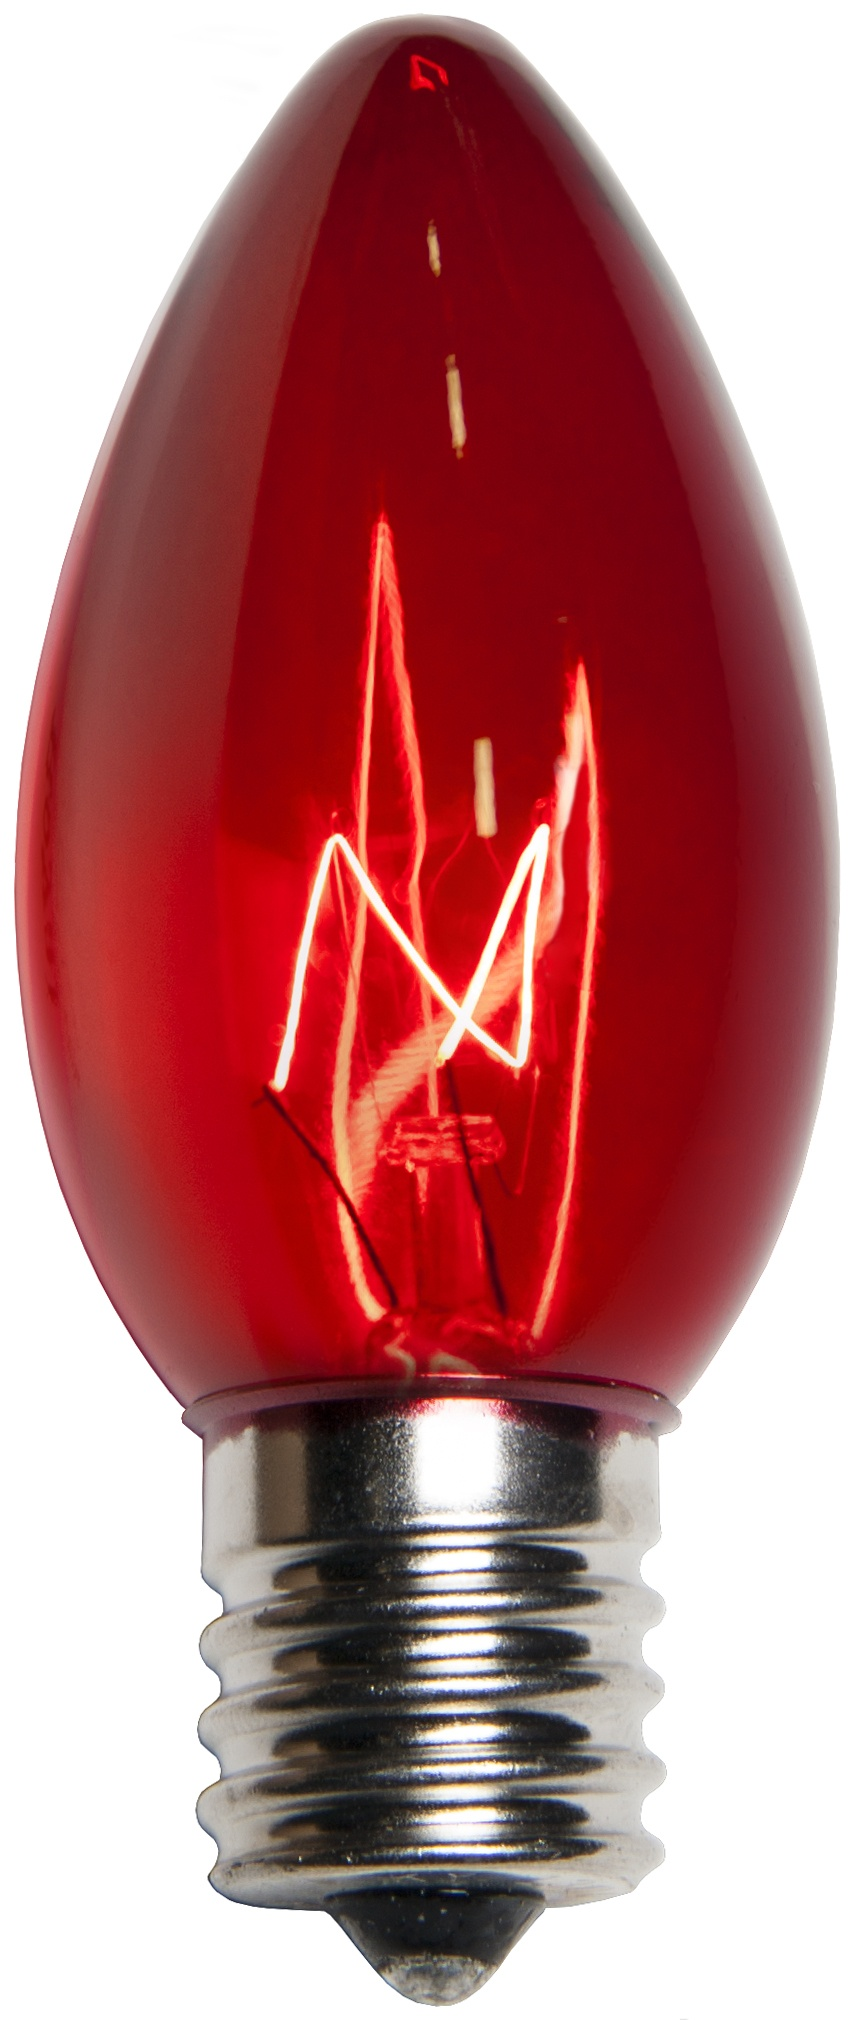 C9 Christmas Light Bulb C9 Red Christmas Light Bulbs